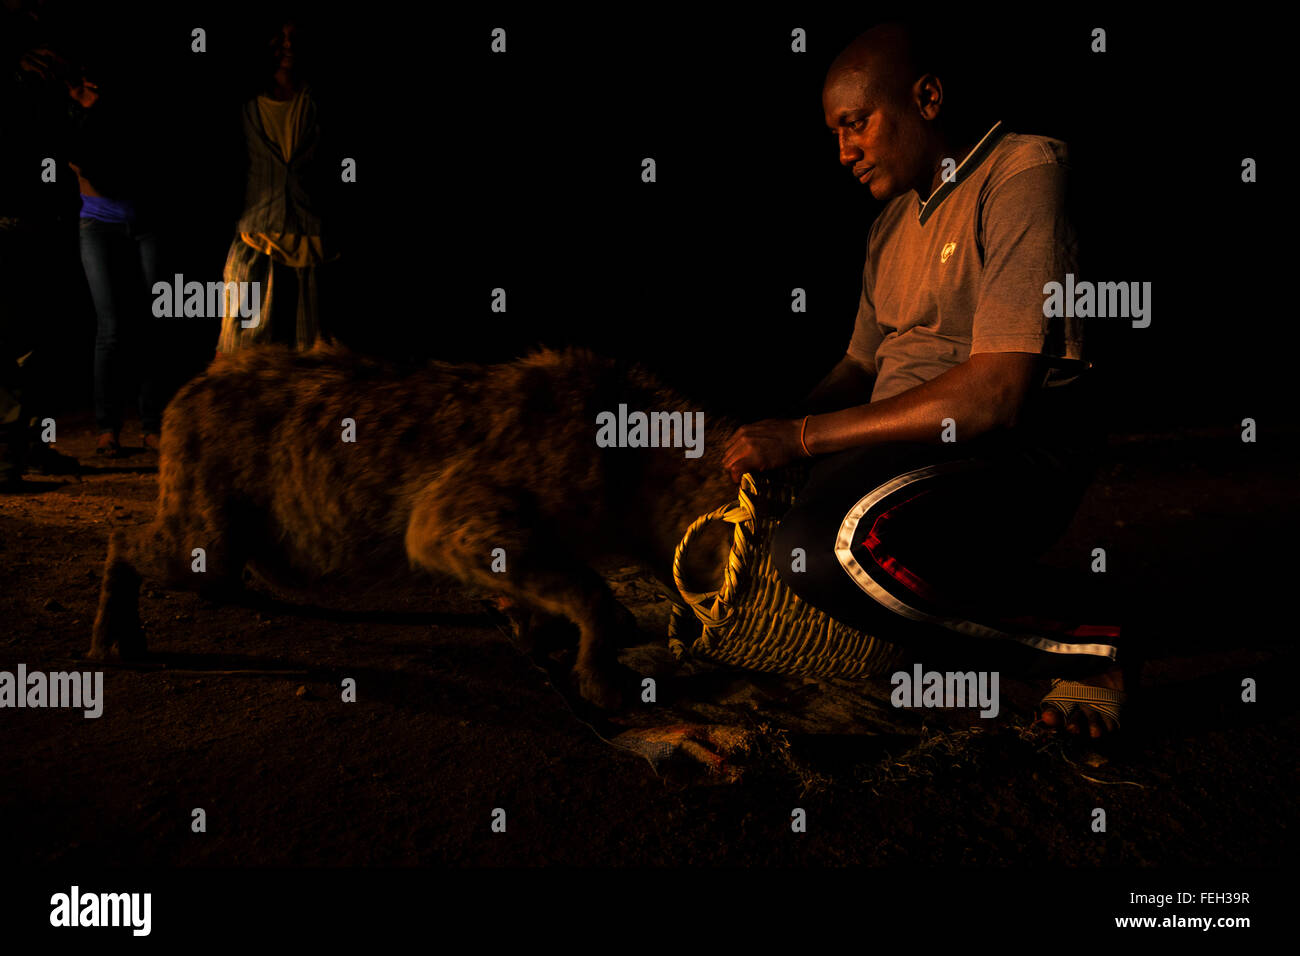 Hyena Man with tourists Harar, Ethiopia. - Stock Image